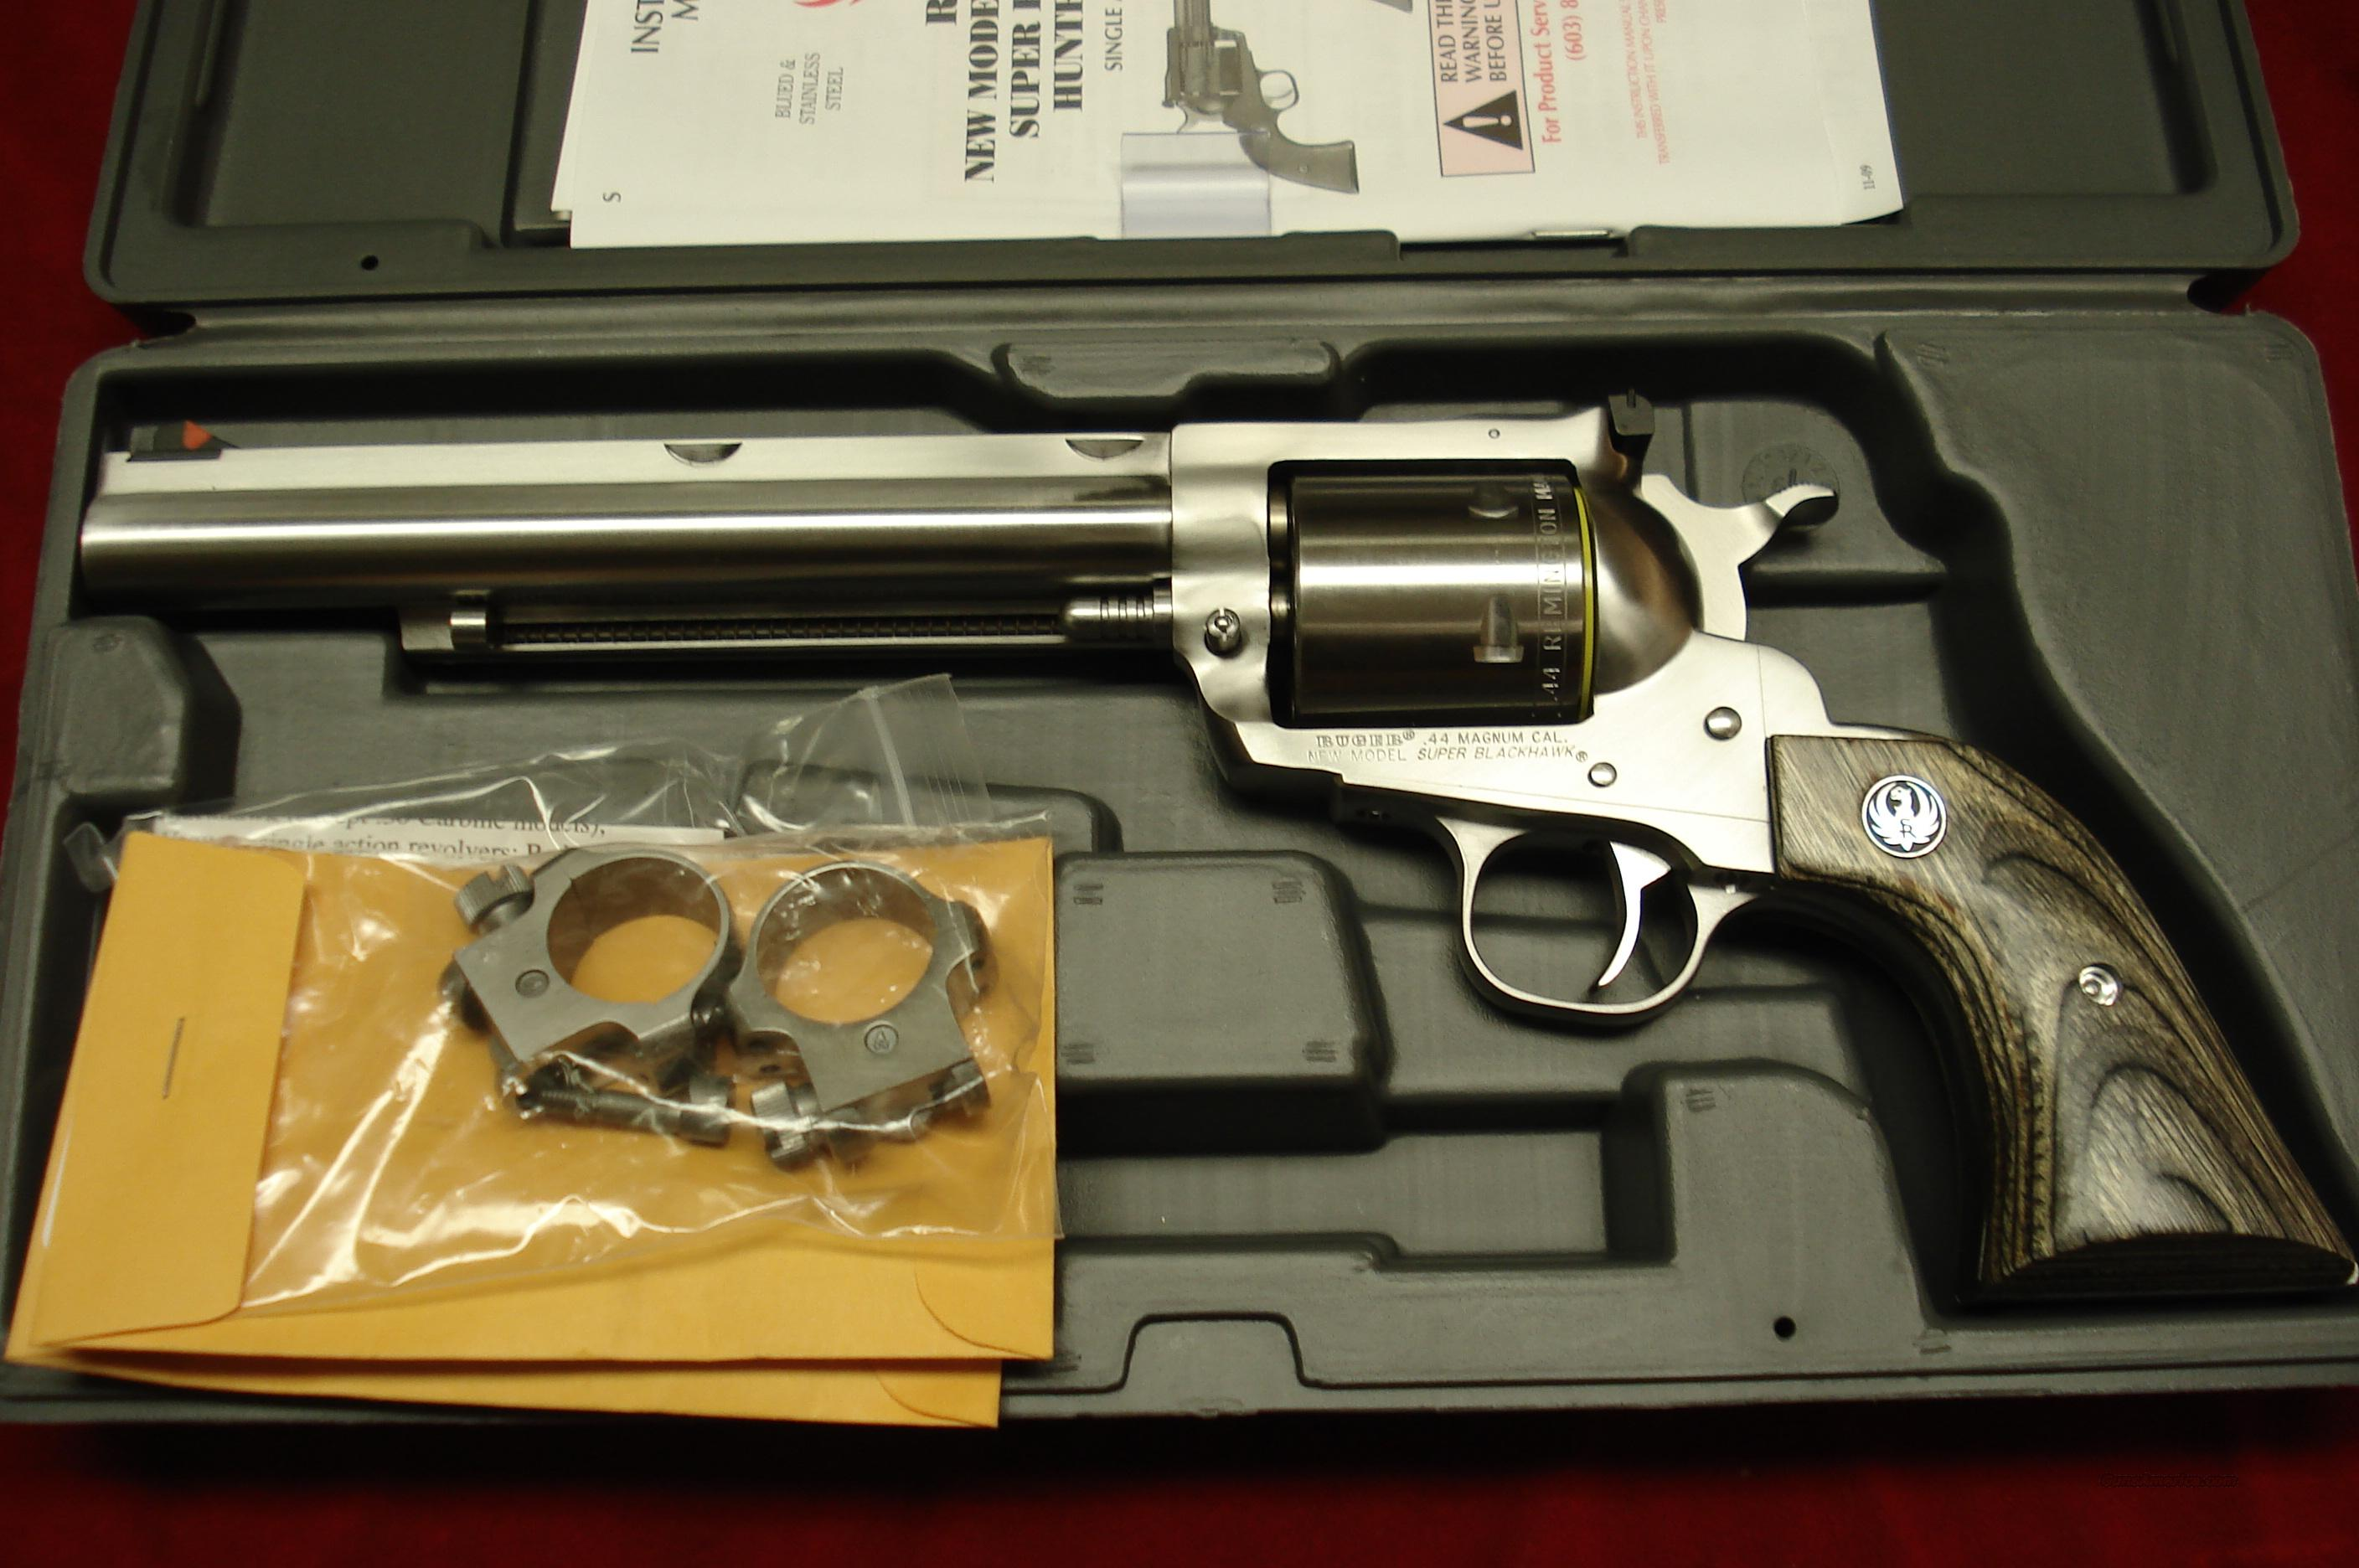 RUGER STAINLESS SUPER BLACKHAWK HUNTER 44MAG NEW (KS-47NHNN) (00860)   Guns > Pistols > Ruger Single Action Revolvers > Blackhawk Type